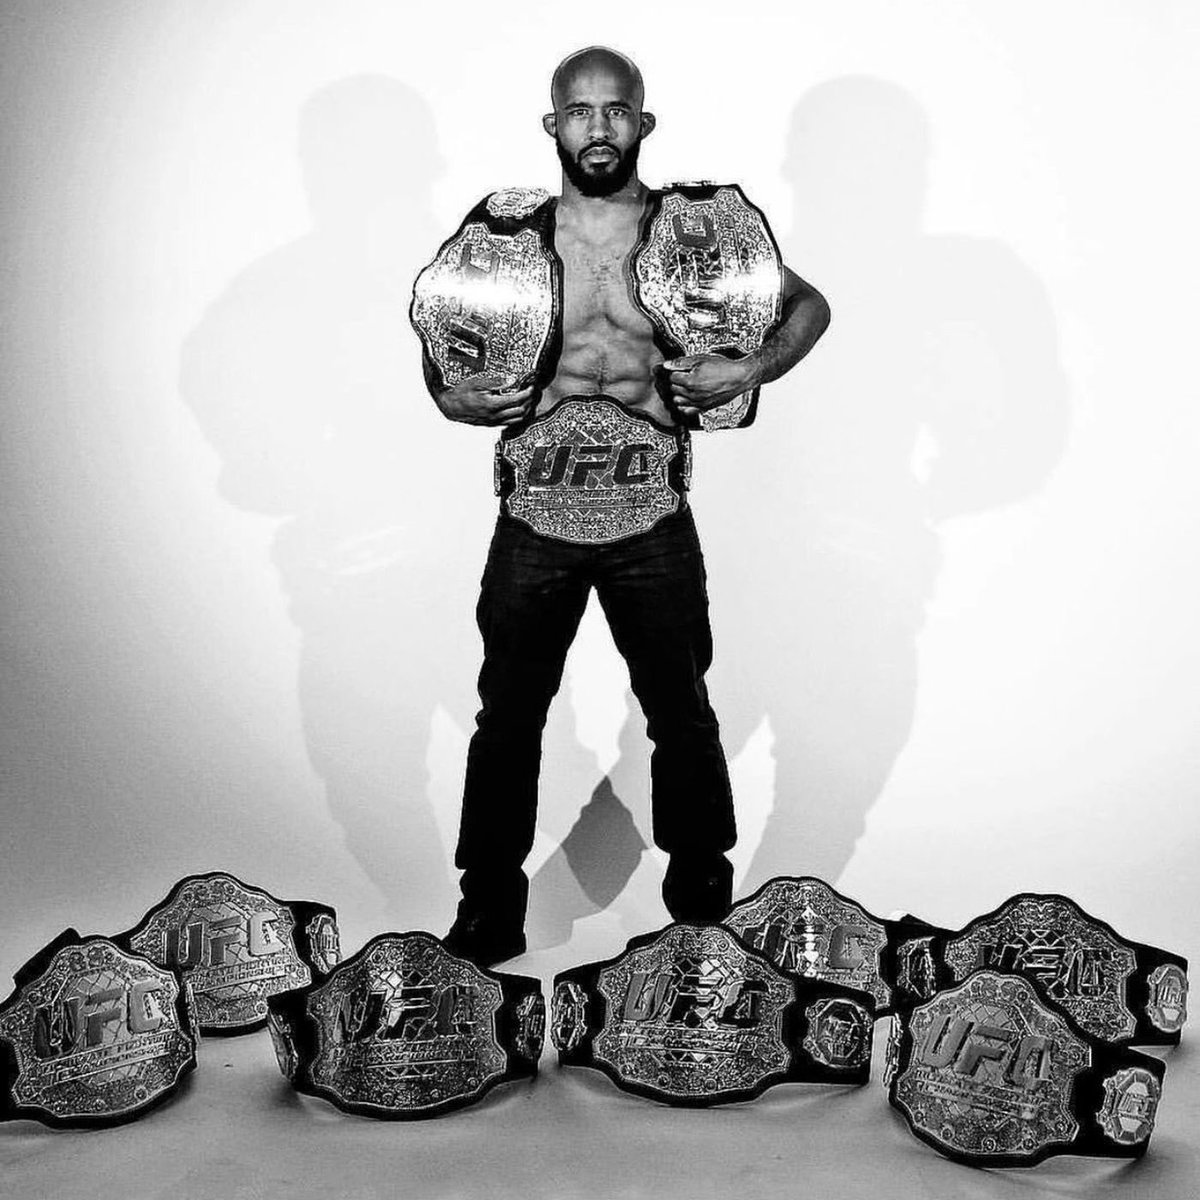 Mighty Mouse began his reign as the UFC Flyweight Champion 8 years ago today.   It's a true pleasure witnessing DJ compete as a martial artist.   He fights to the best of his abilities and always conducts himself like true a role model. https://t.co/ENfWkF1BsS